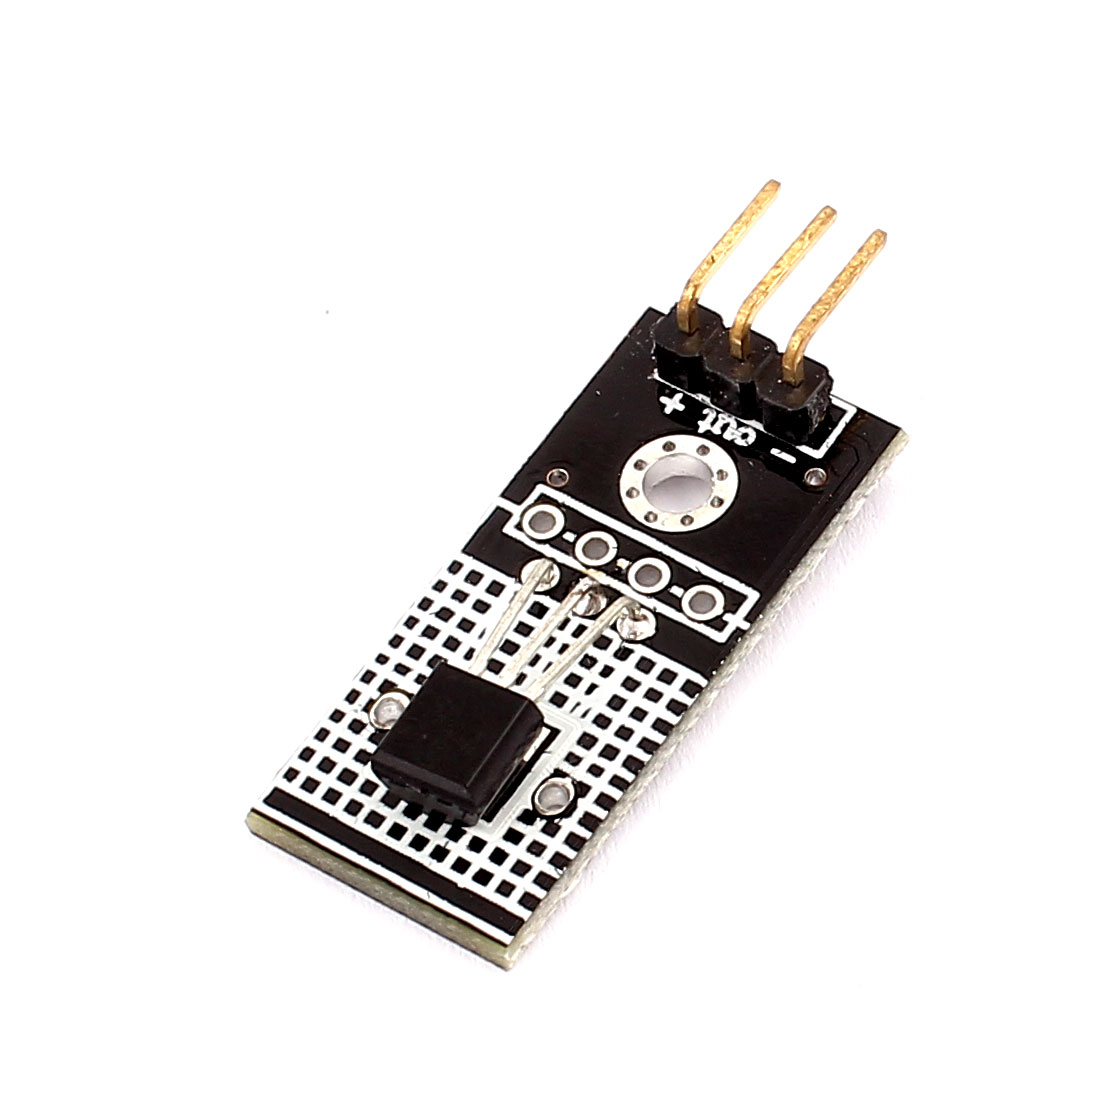 Digital Output Temperature Humidity Sensor Module LM35D